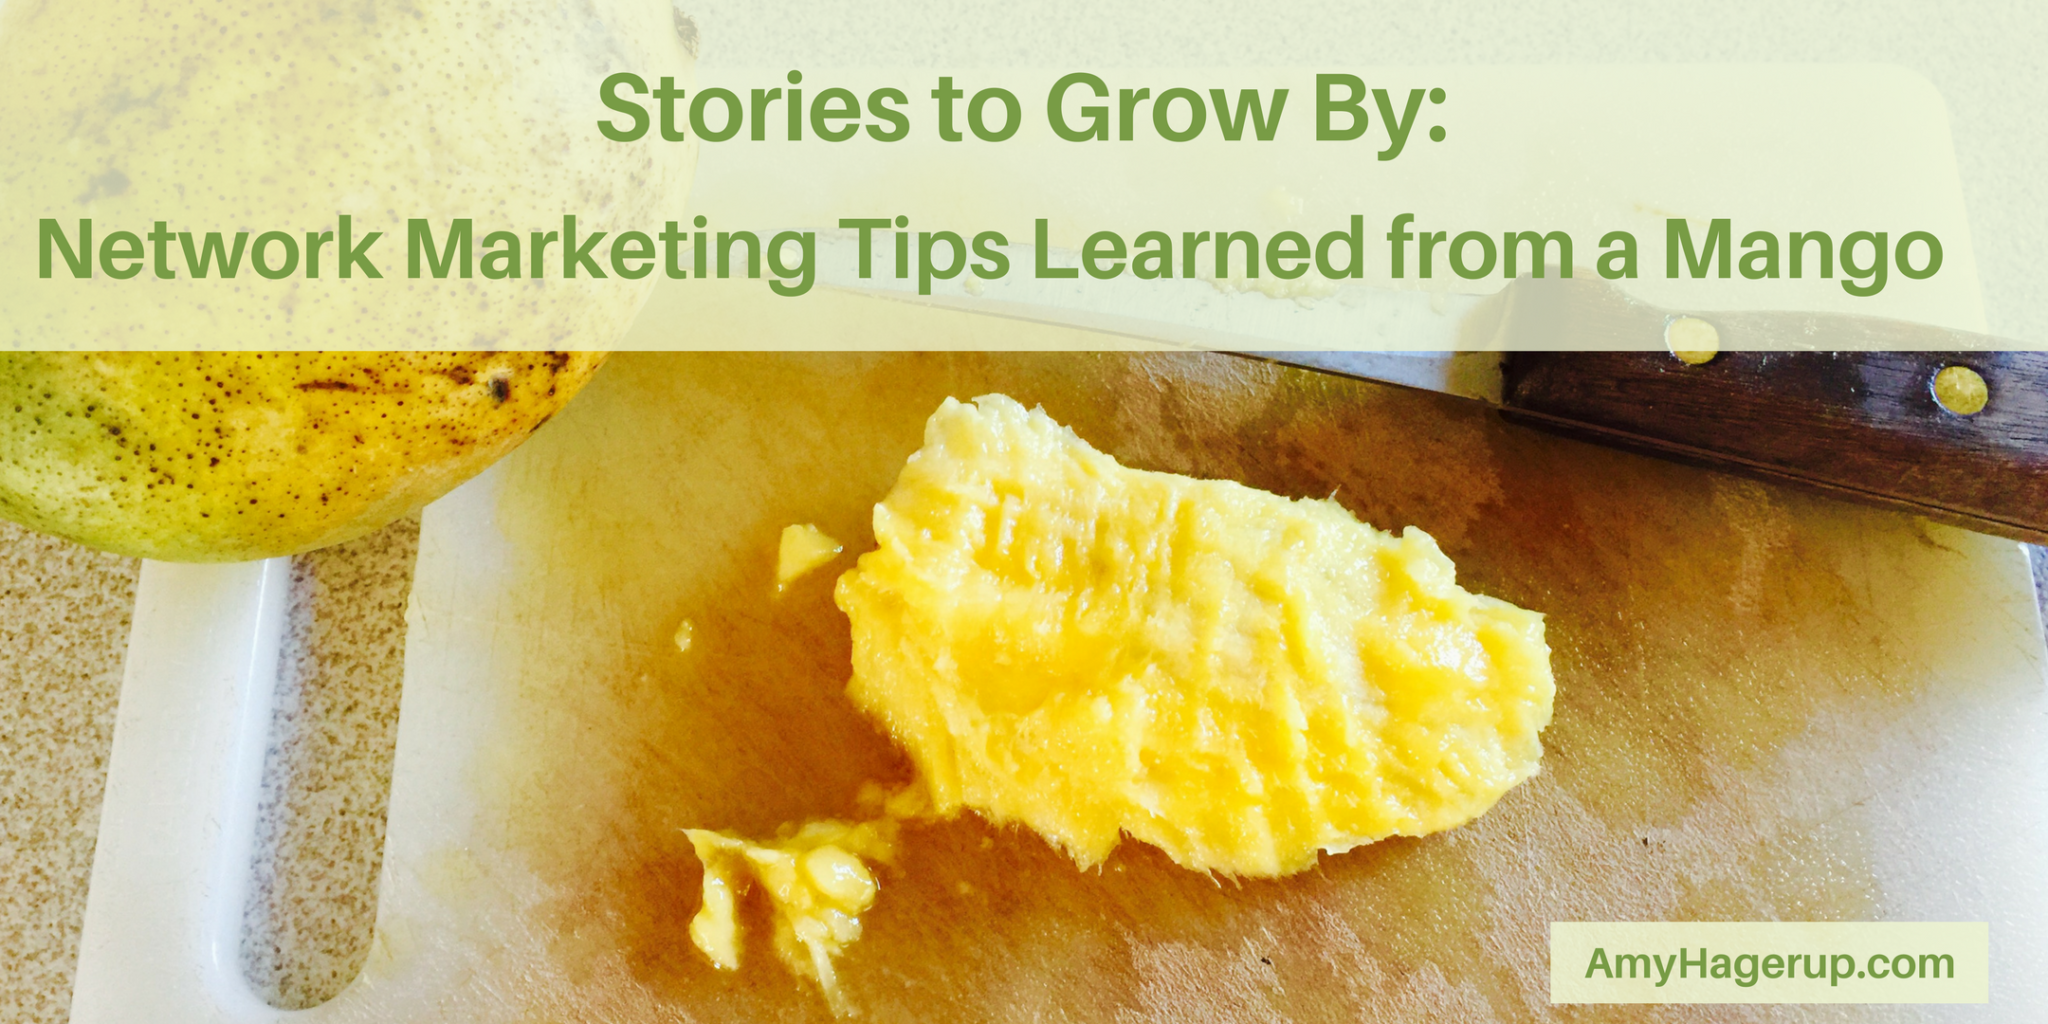 Check out these network marketing tips learned from eating a mango.